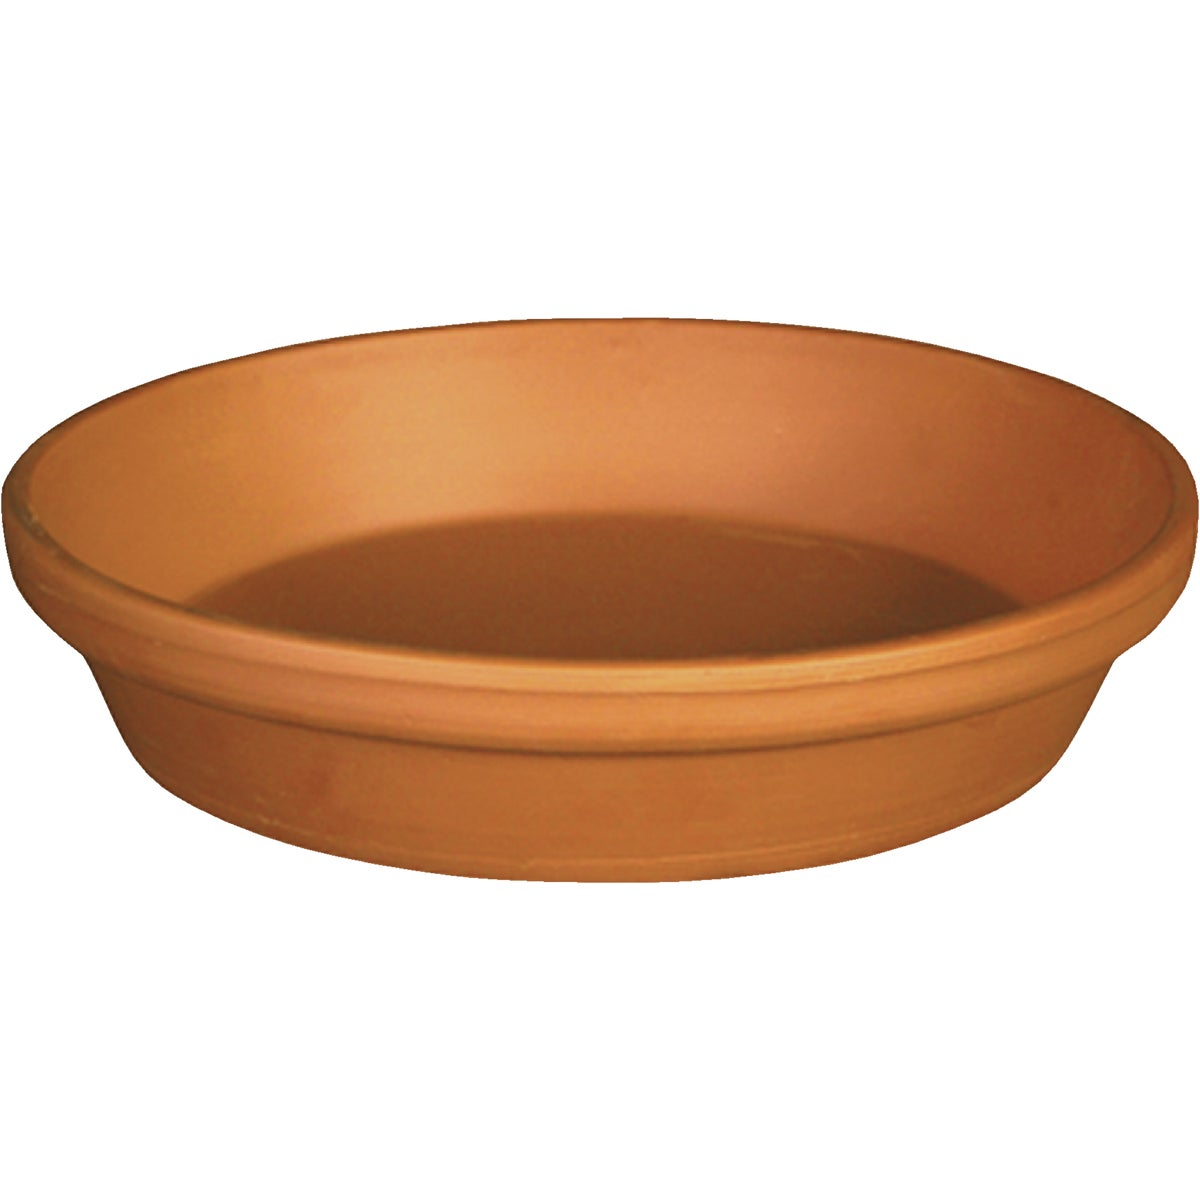 "4"" TC CLAY SAUCER - M8190PZ by Deroma"